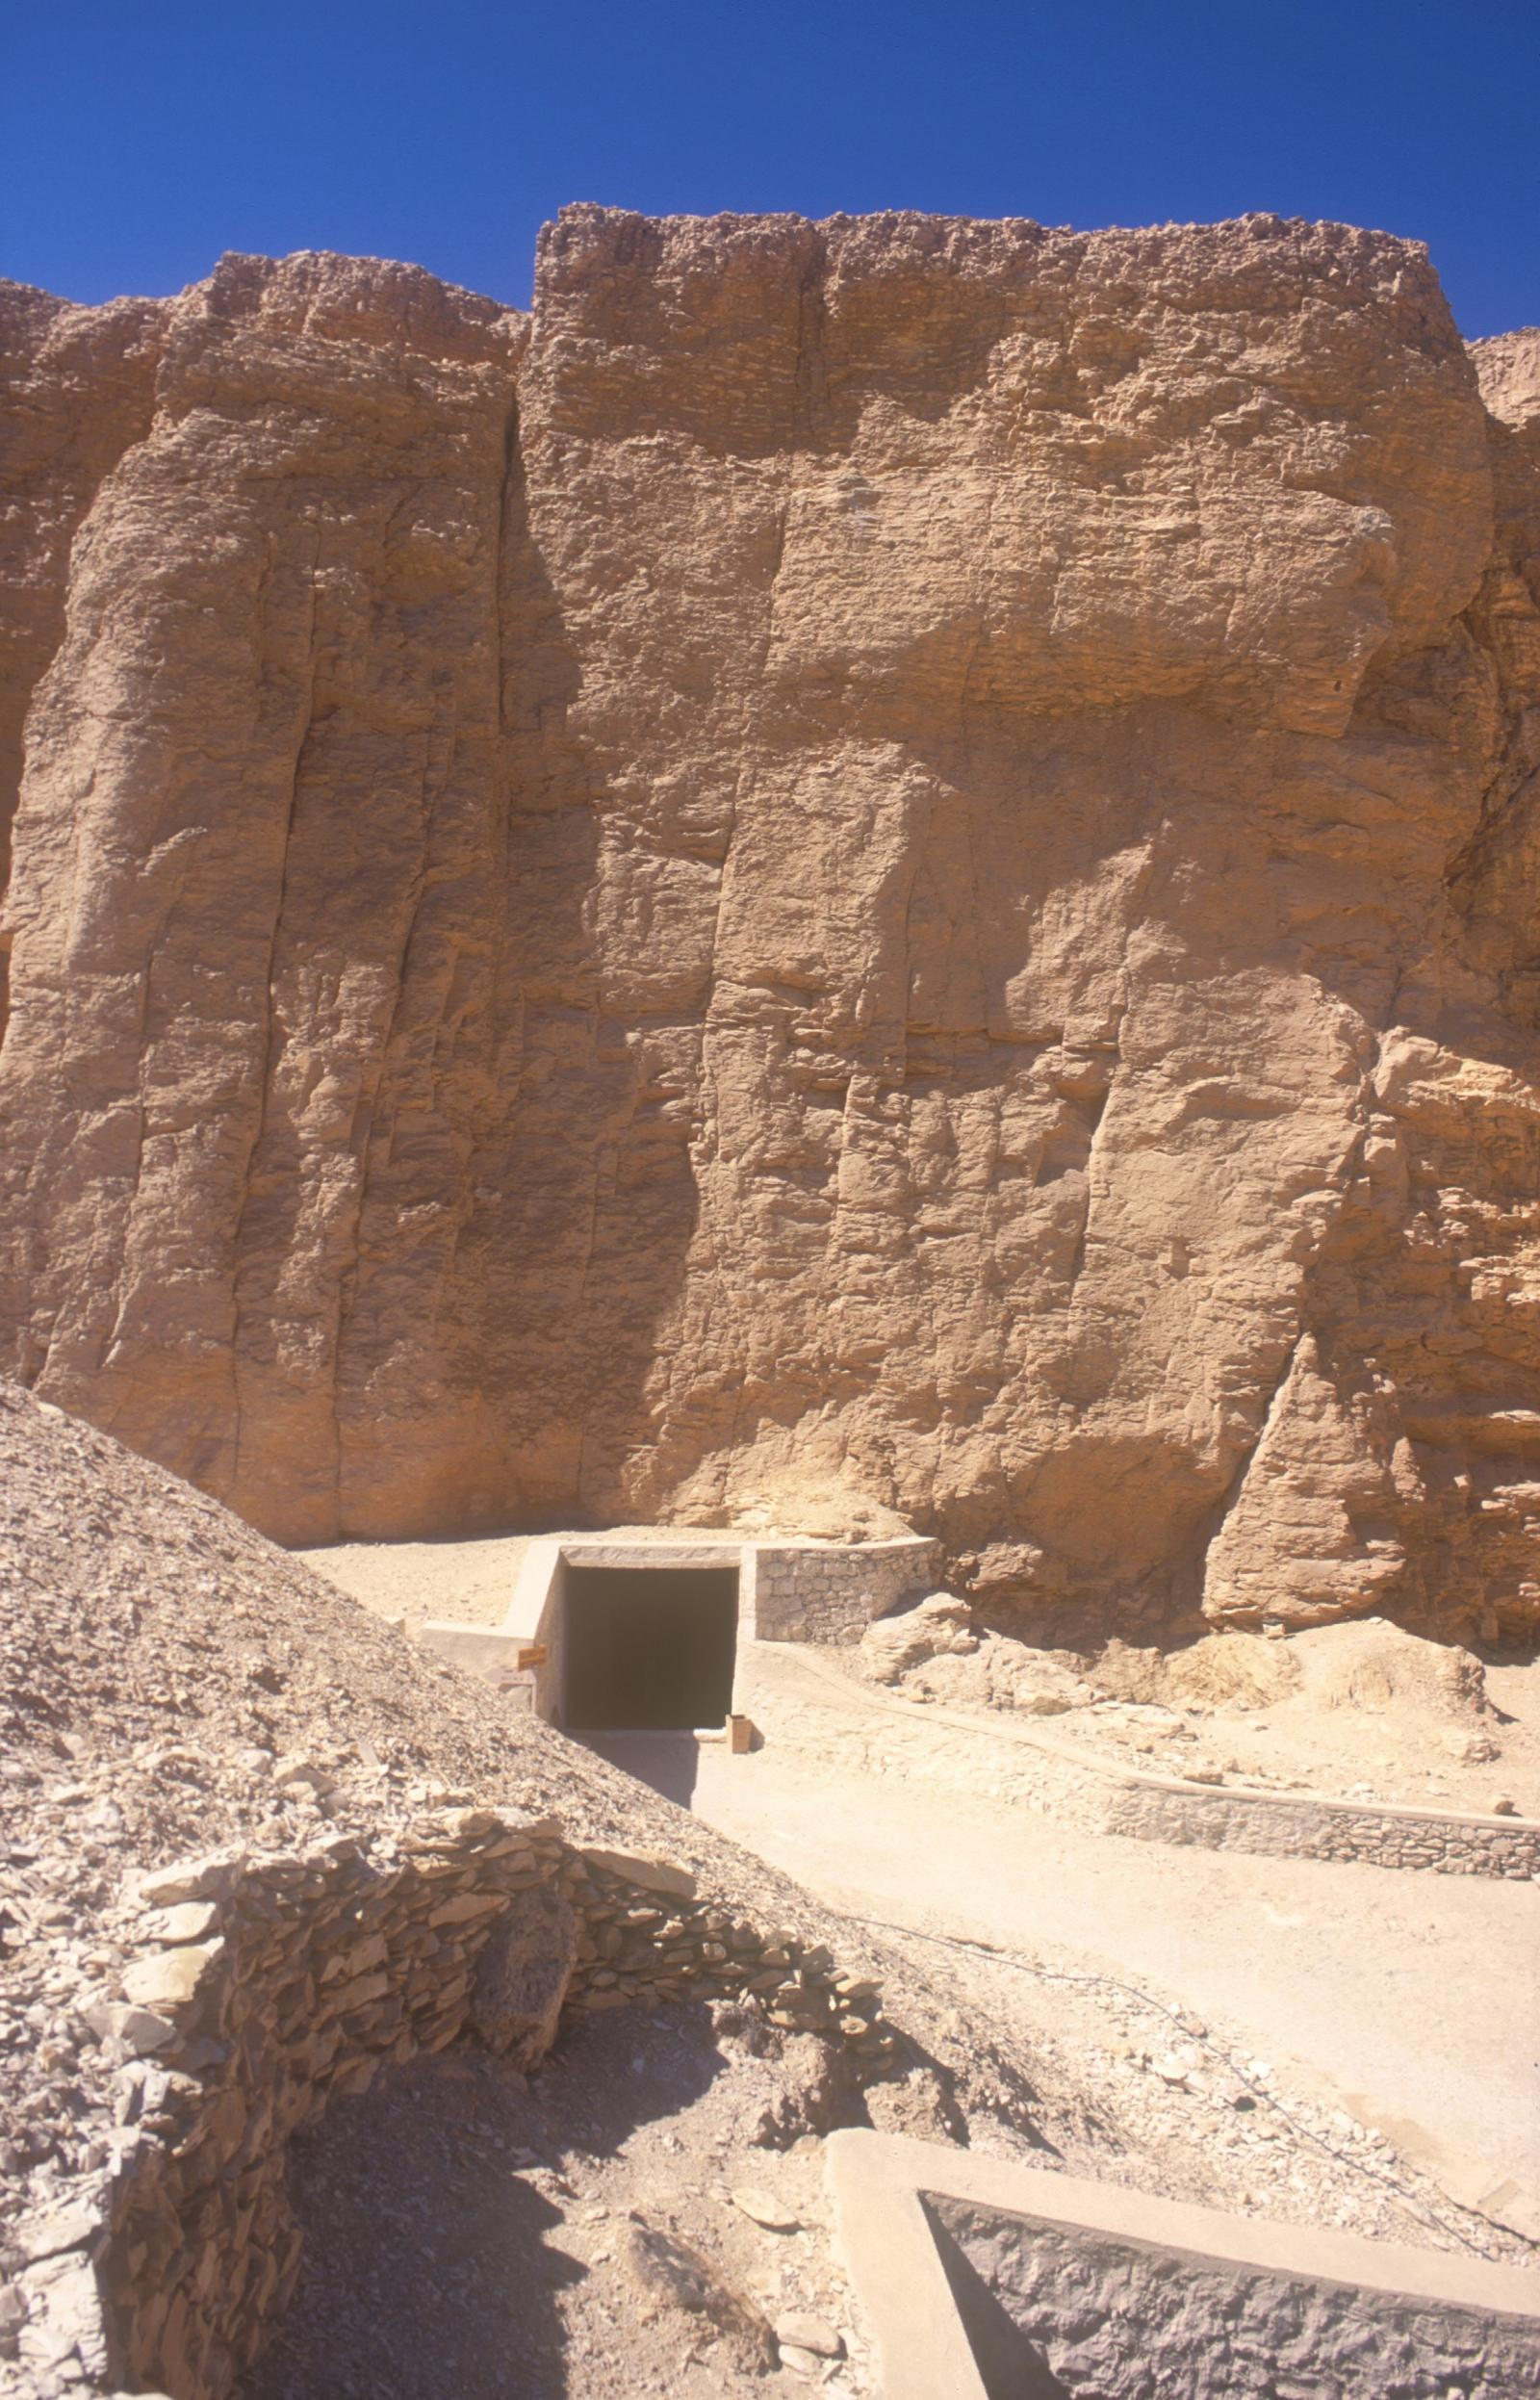 Tomb entrance at base of cliffs with modern covering for flood protection.